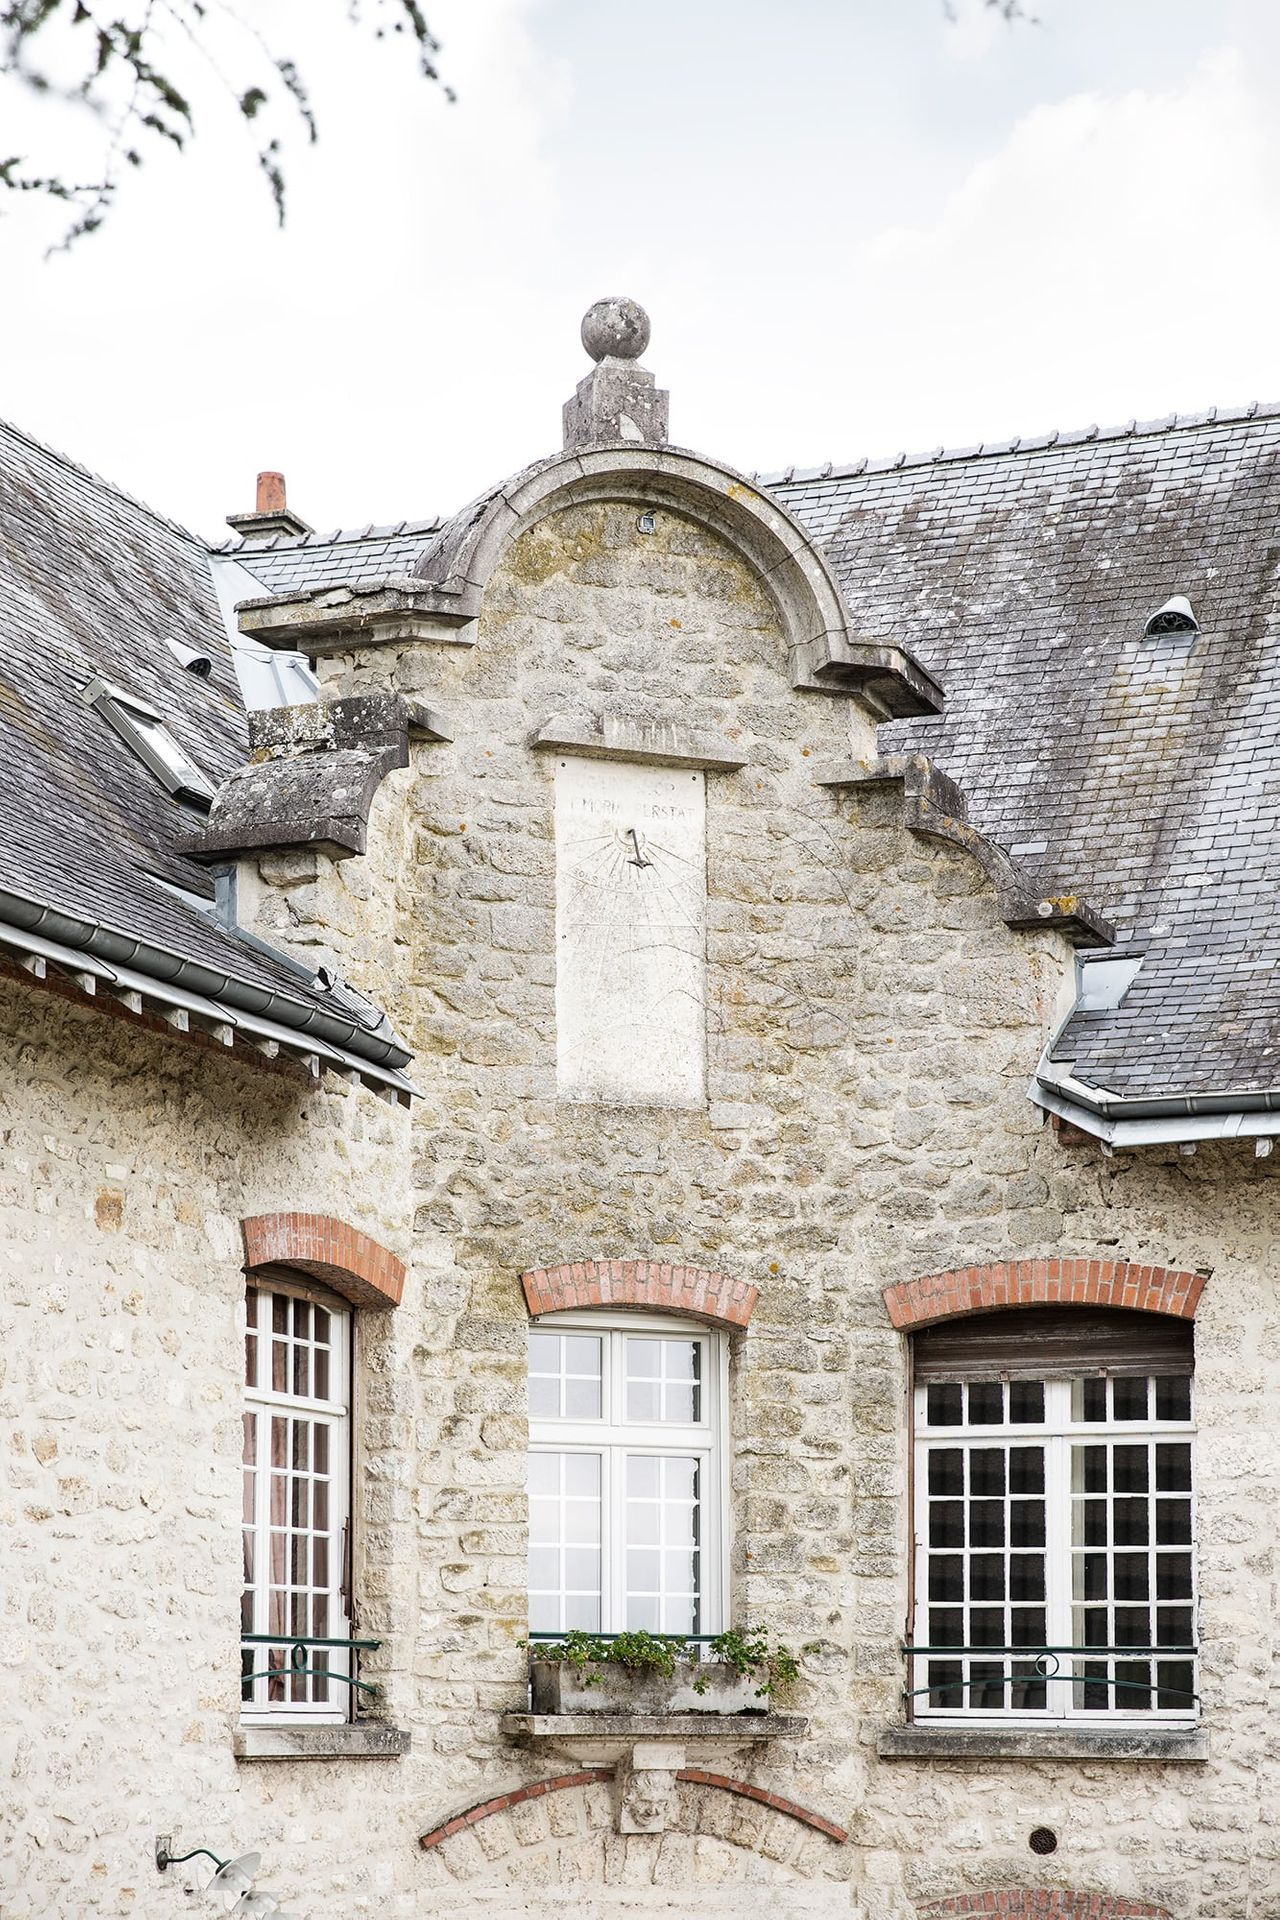 Detail view of Chateau Boll in France